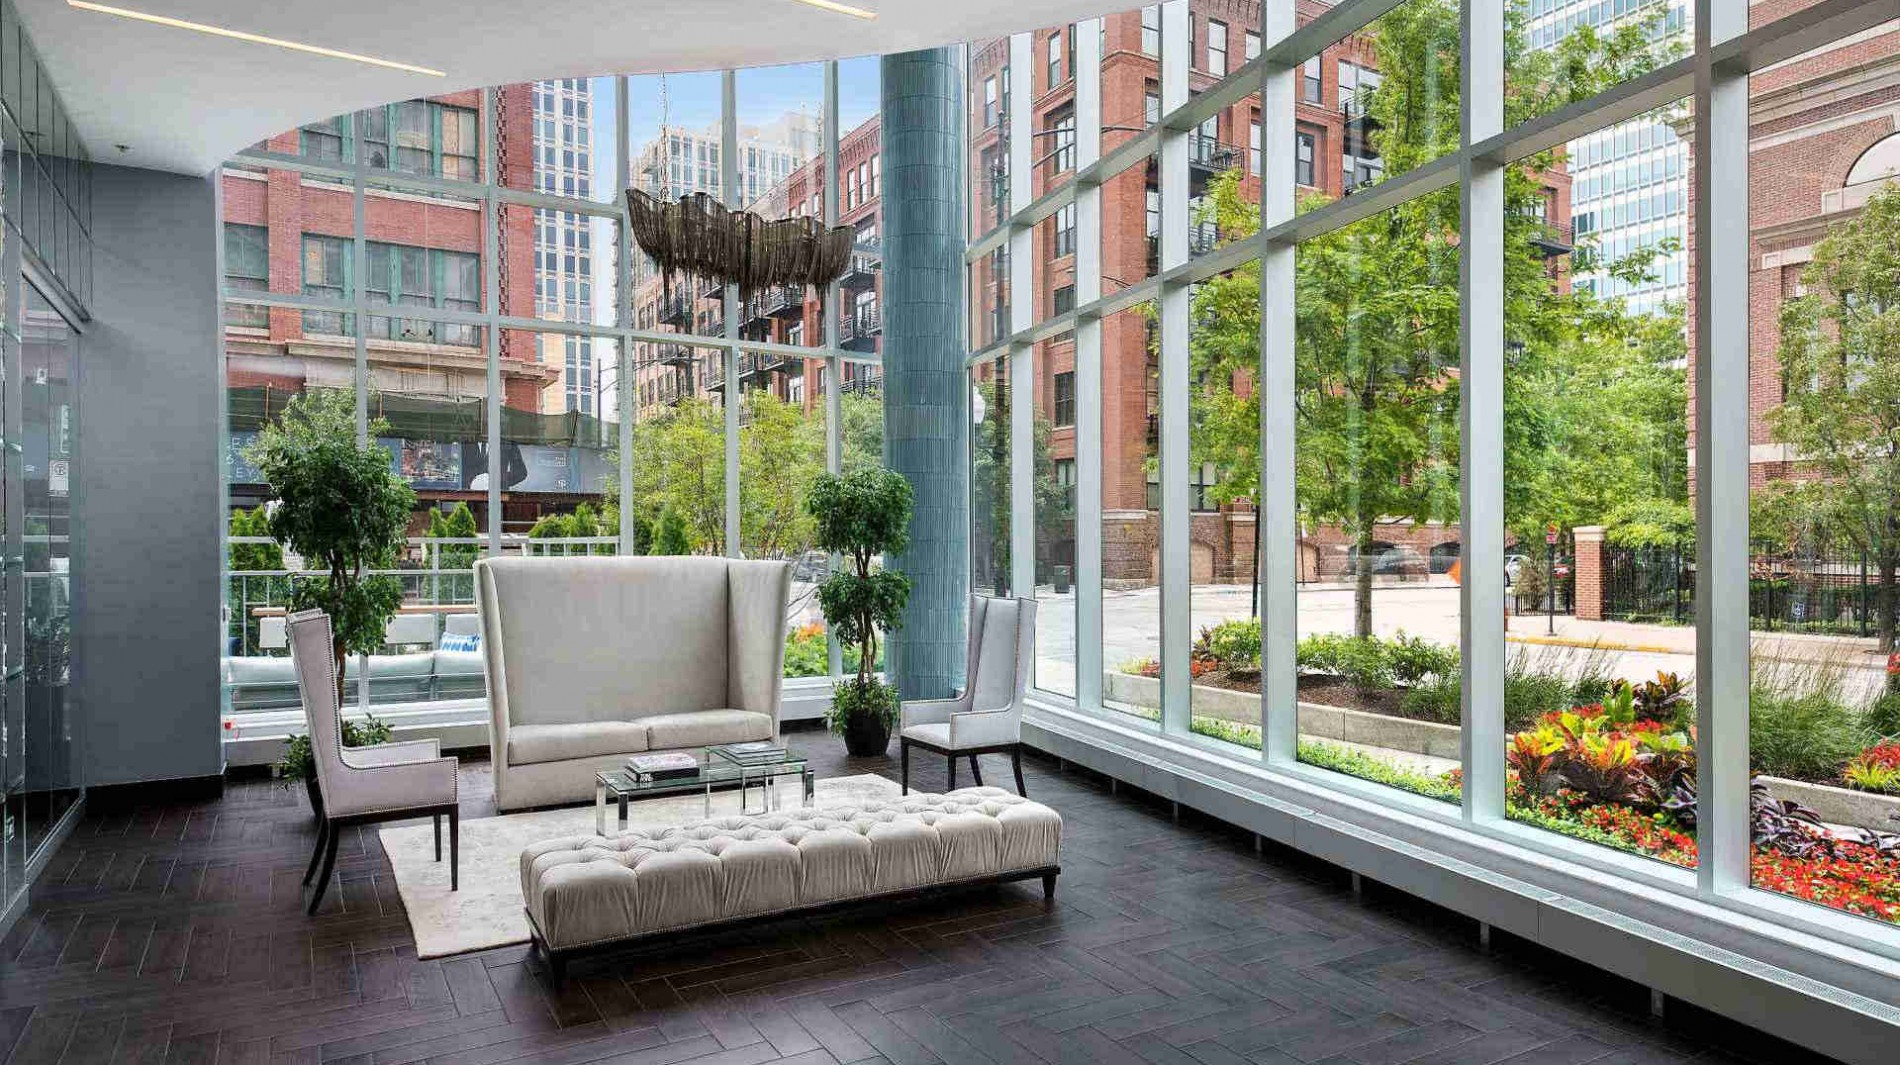 Spectacular views start the moment you enter Parc Huron through floor-to-ceiling glass windows.